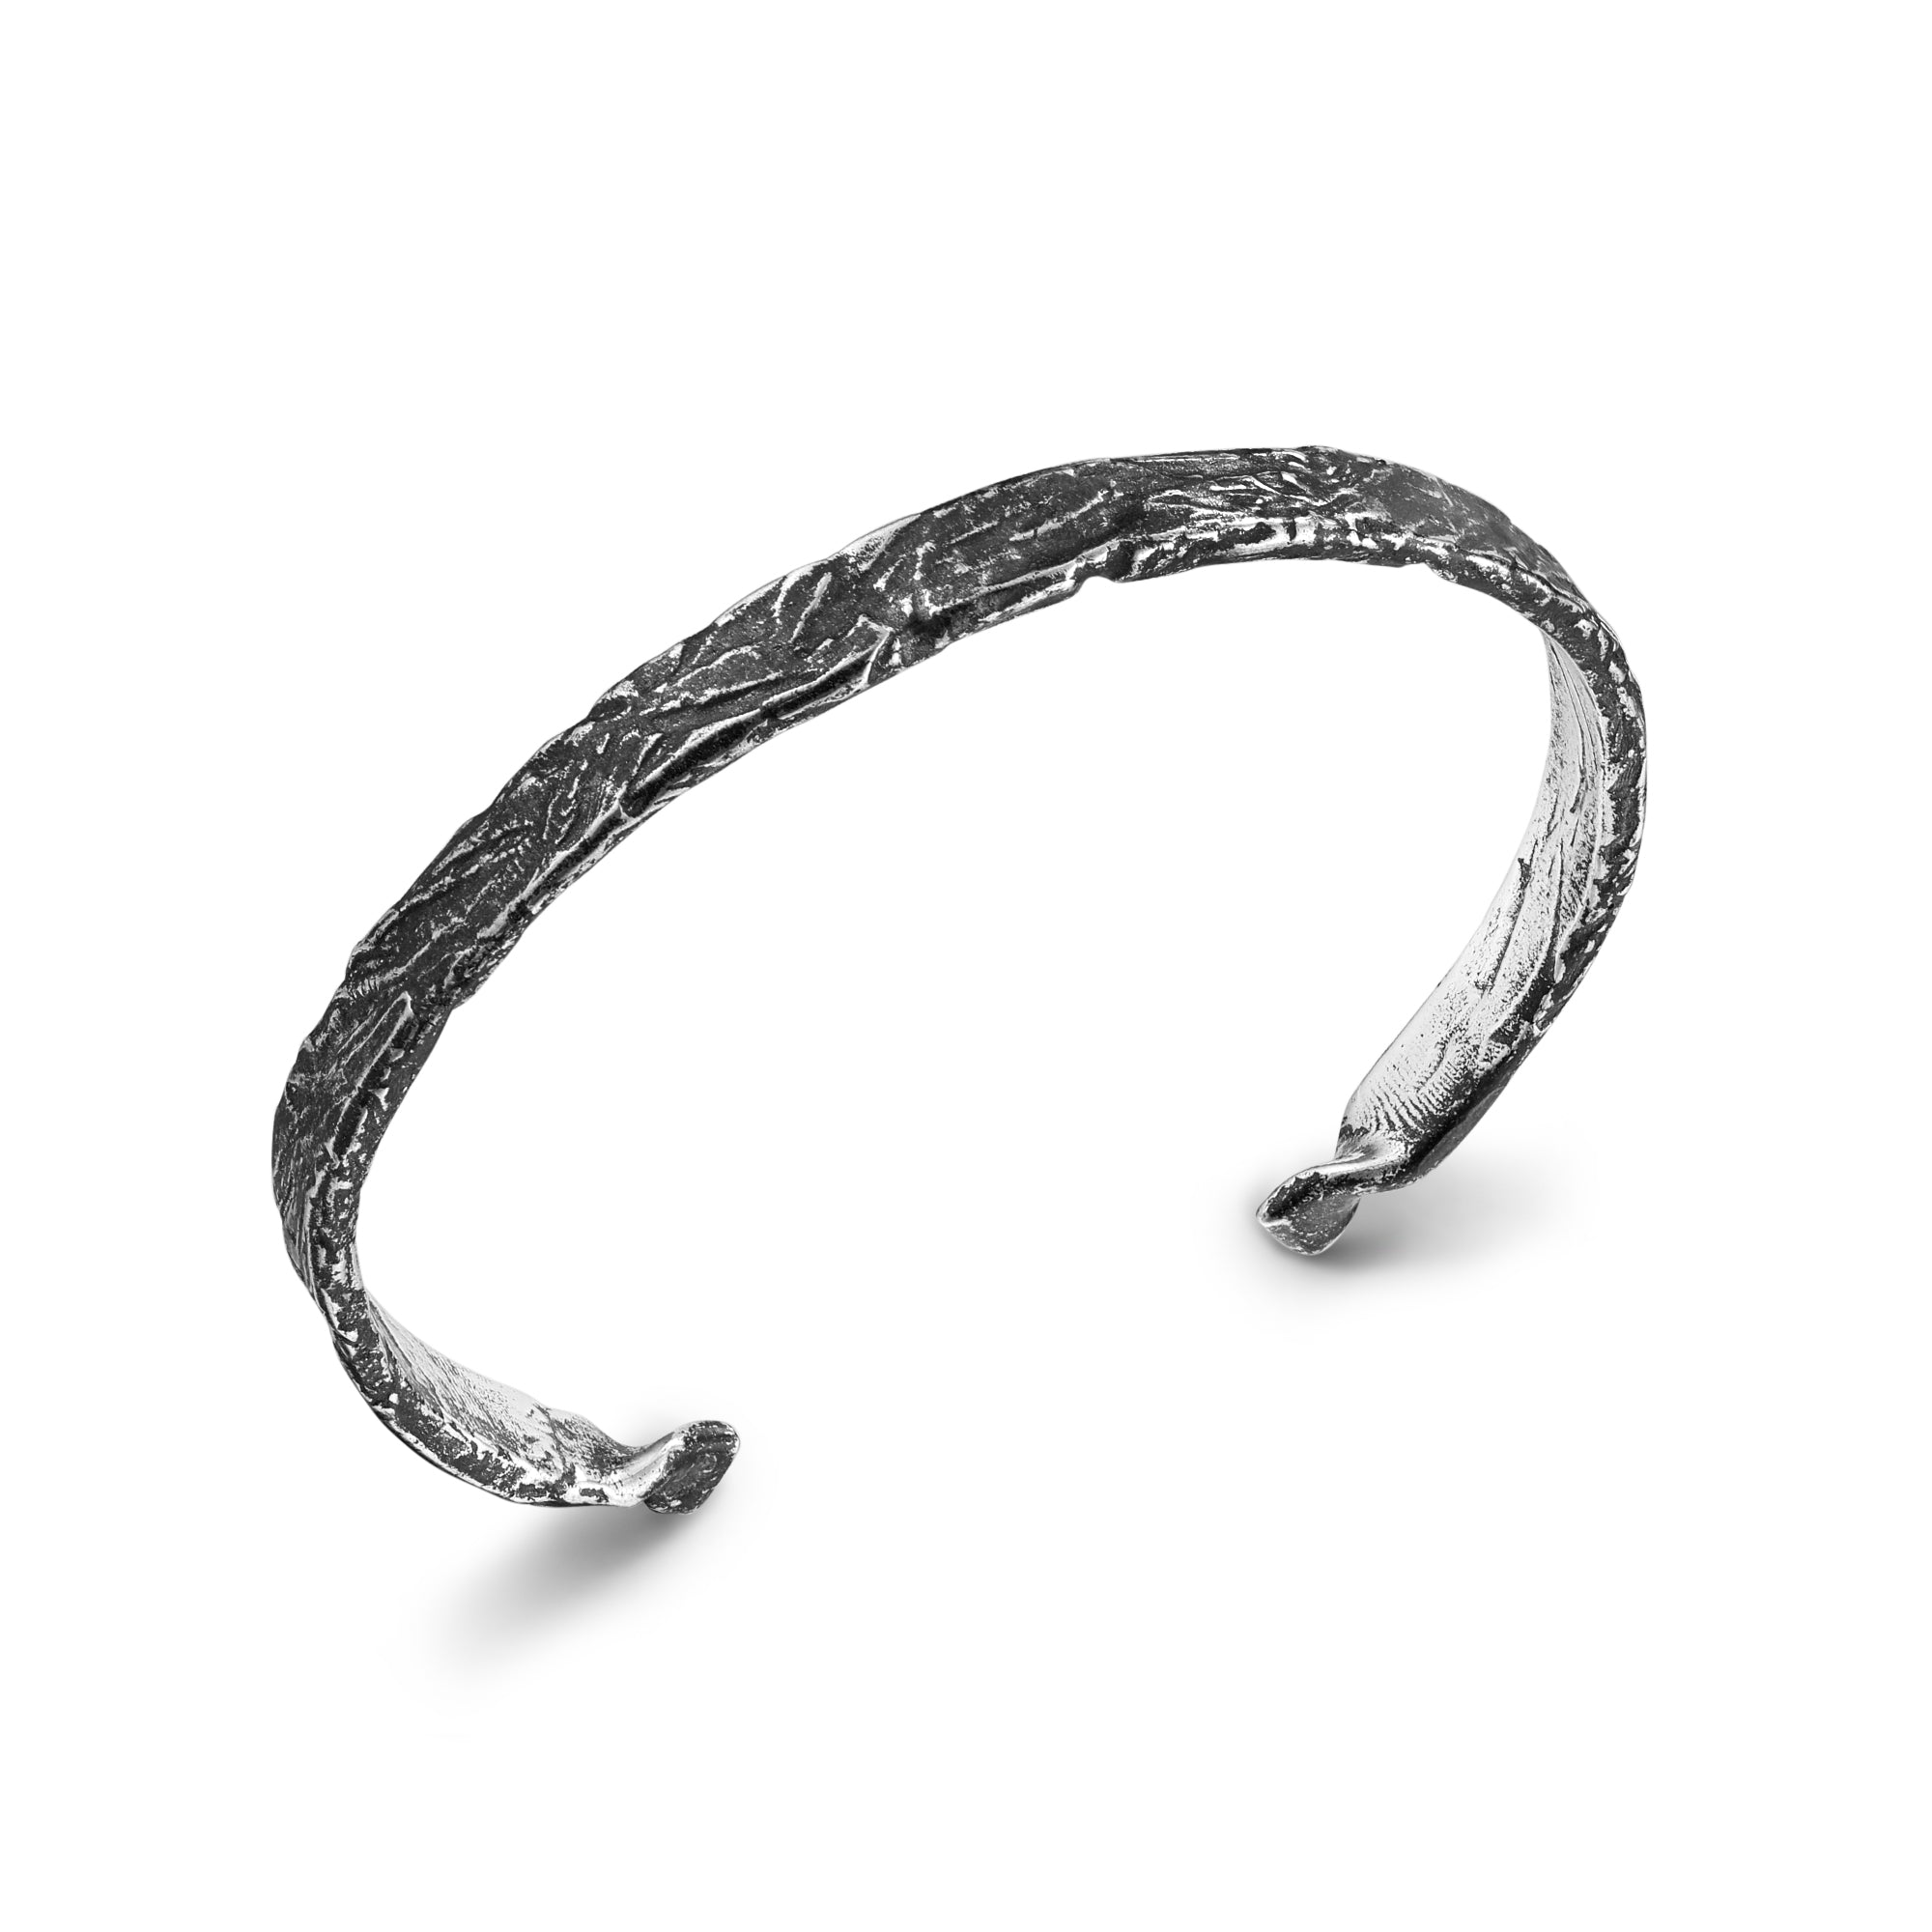 Deeply Textured Slim Cuff Bracelet